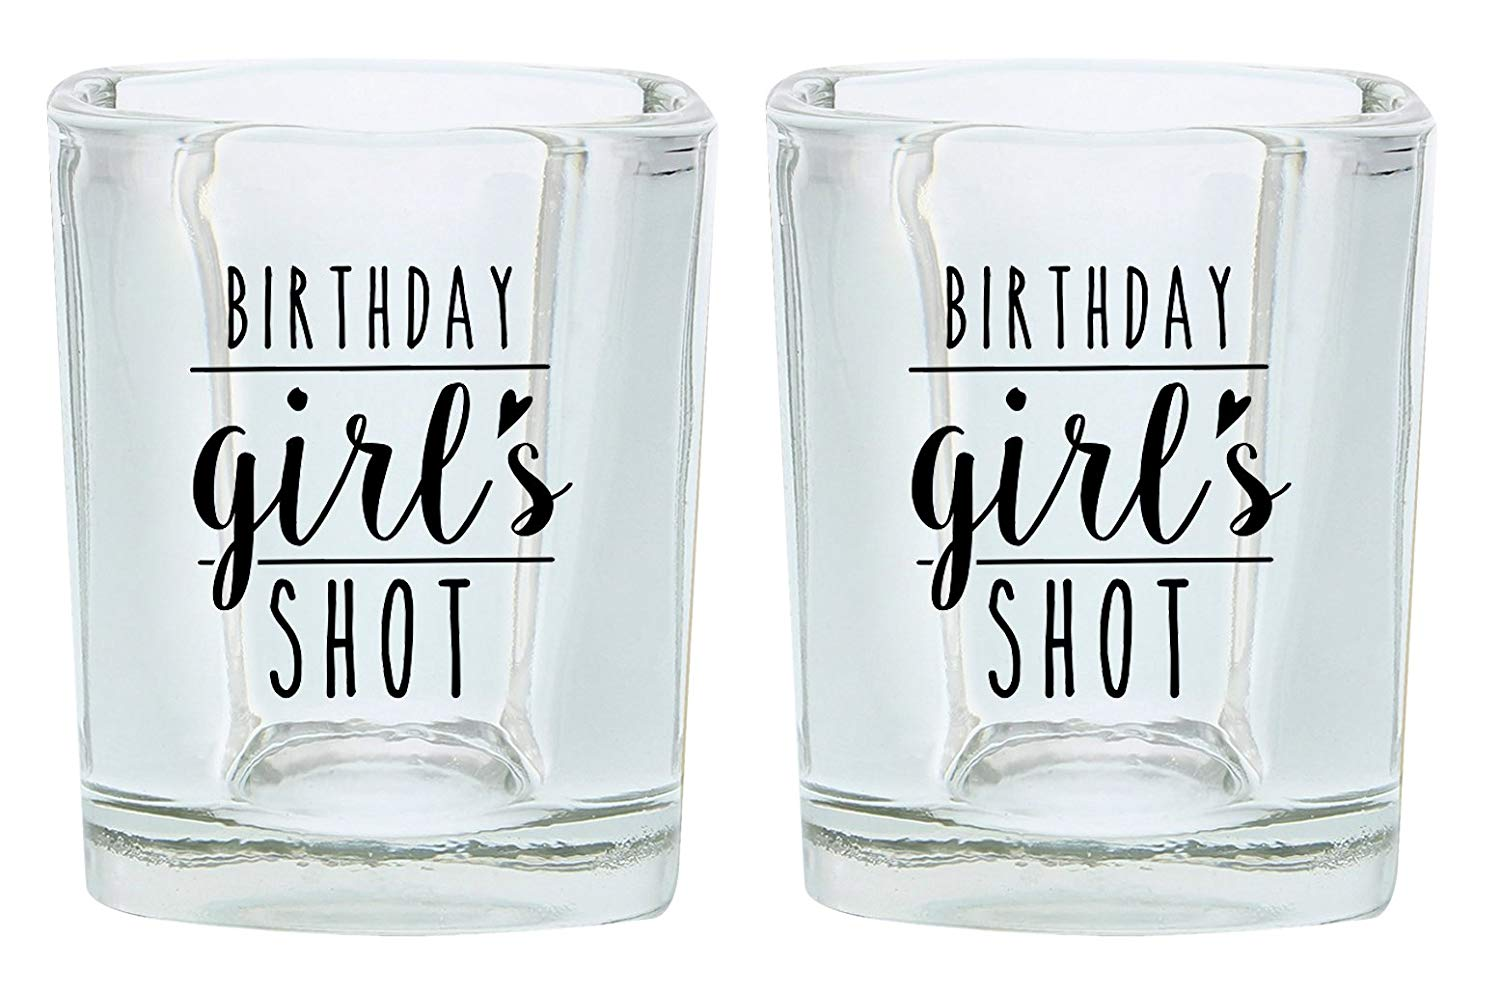 235dddc6a2 Get Quotations · Birthday Shot Glass for Women Birthday Girl 21st 30th 40th  Birthday Gift Shot Glasses 2-